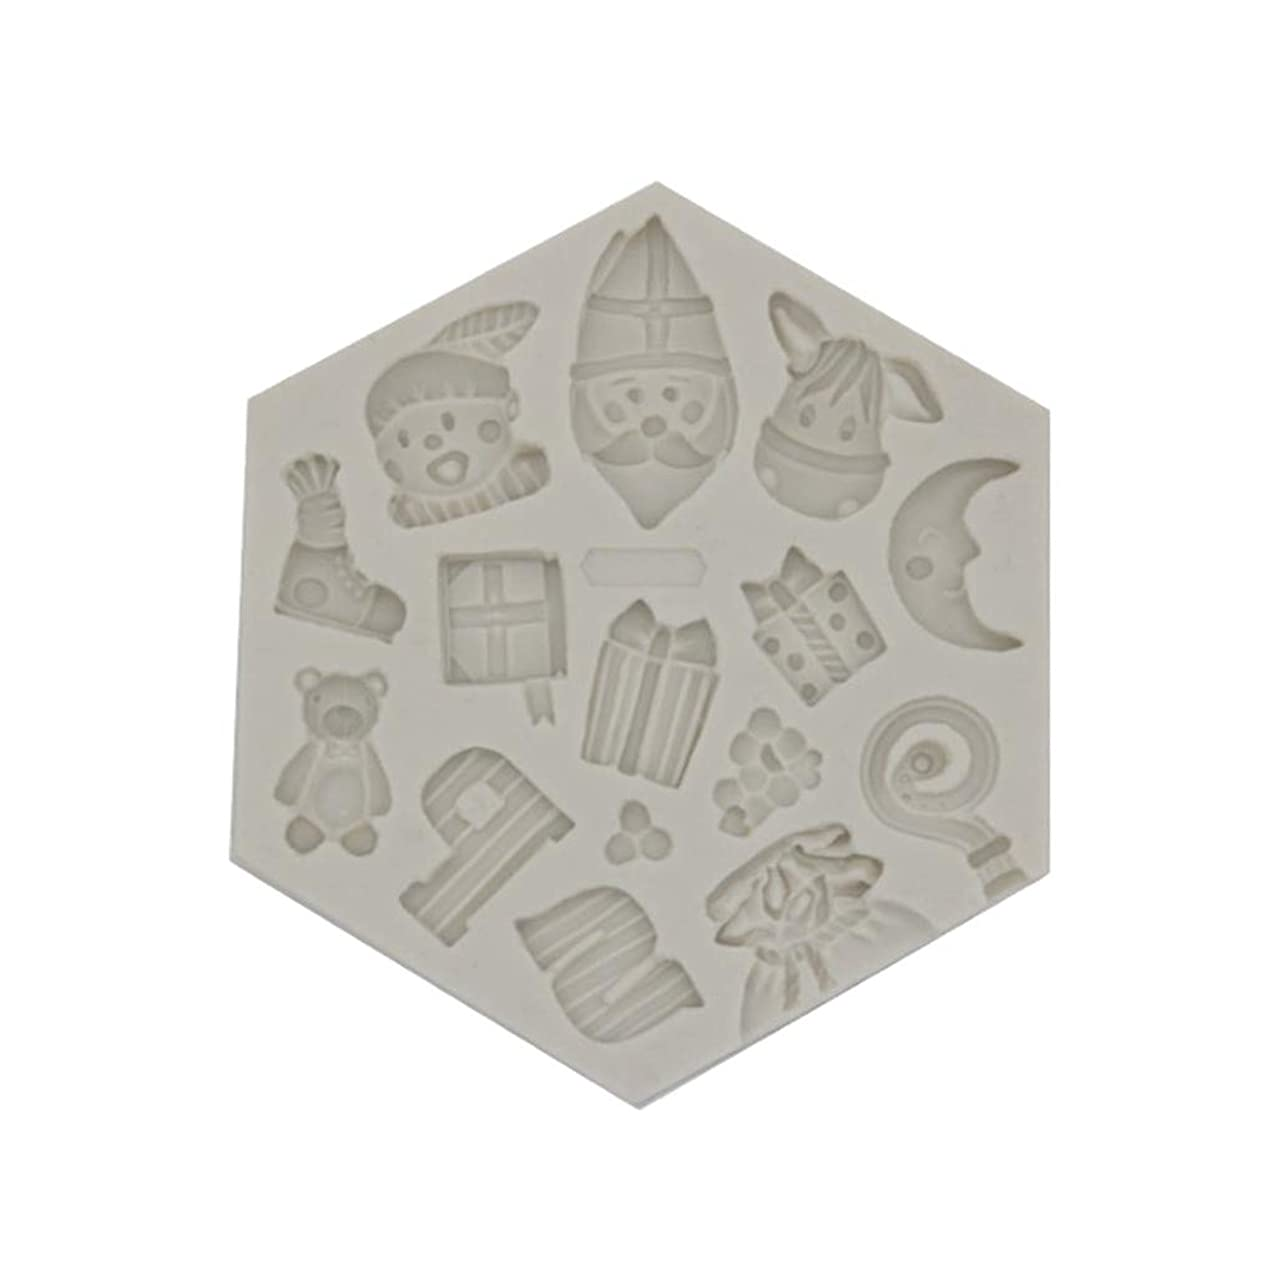 Little Story ?? Chocolate Mold, Silicone Fondant Mold Cake Decorating Chocolate Baking Mould Tool